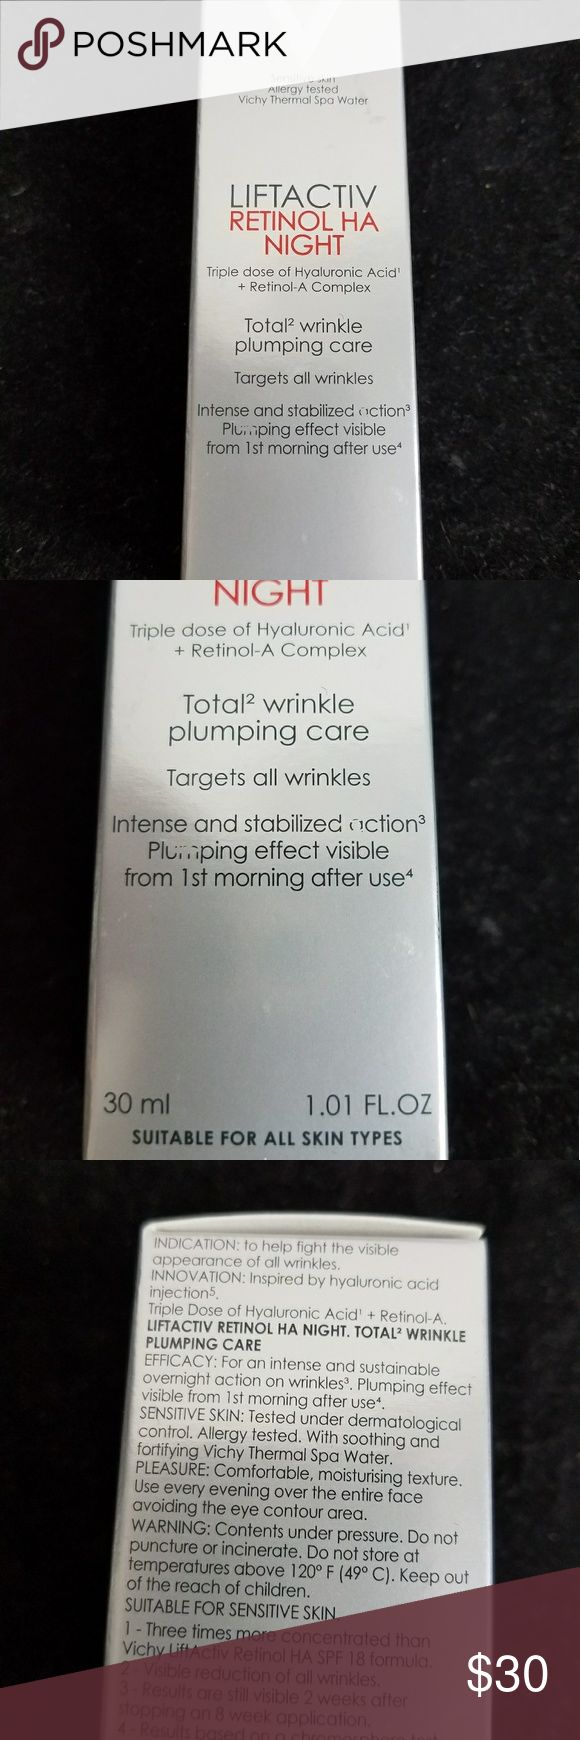 Vichy LIFTACTIV RETINOL HA NIGHT wrinkle cream Vichy laboratories  - Sensitive Skin, Allergy Tested, Vichy Thermal water. 30 no 1.01 FL.OZ  LIFTACTIV RETINOL HA NIGHT - Triple dose of Hyaluronic Acid + Retinol-A Complex. Total wrinkle plumping care. Targets all wrinkles from 1st morning after use. v Makeup